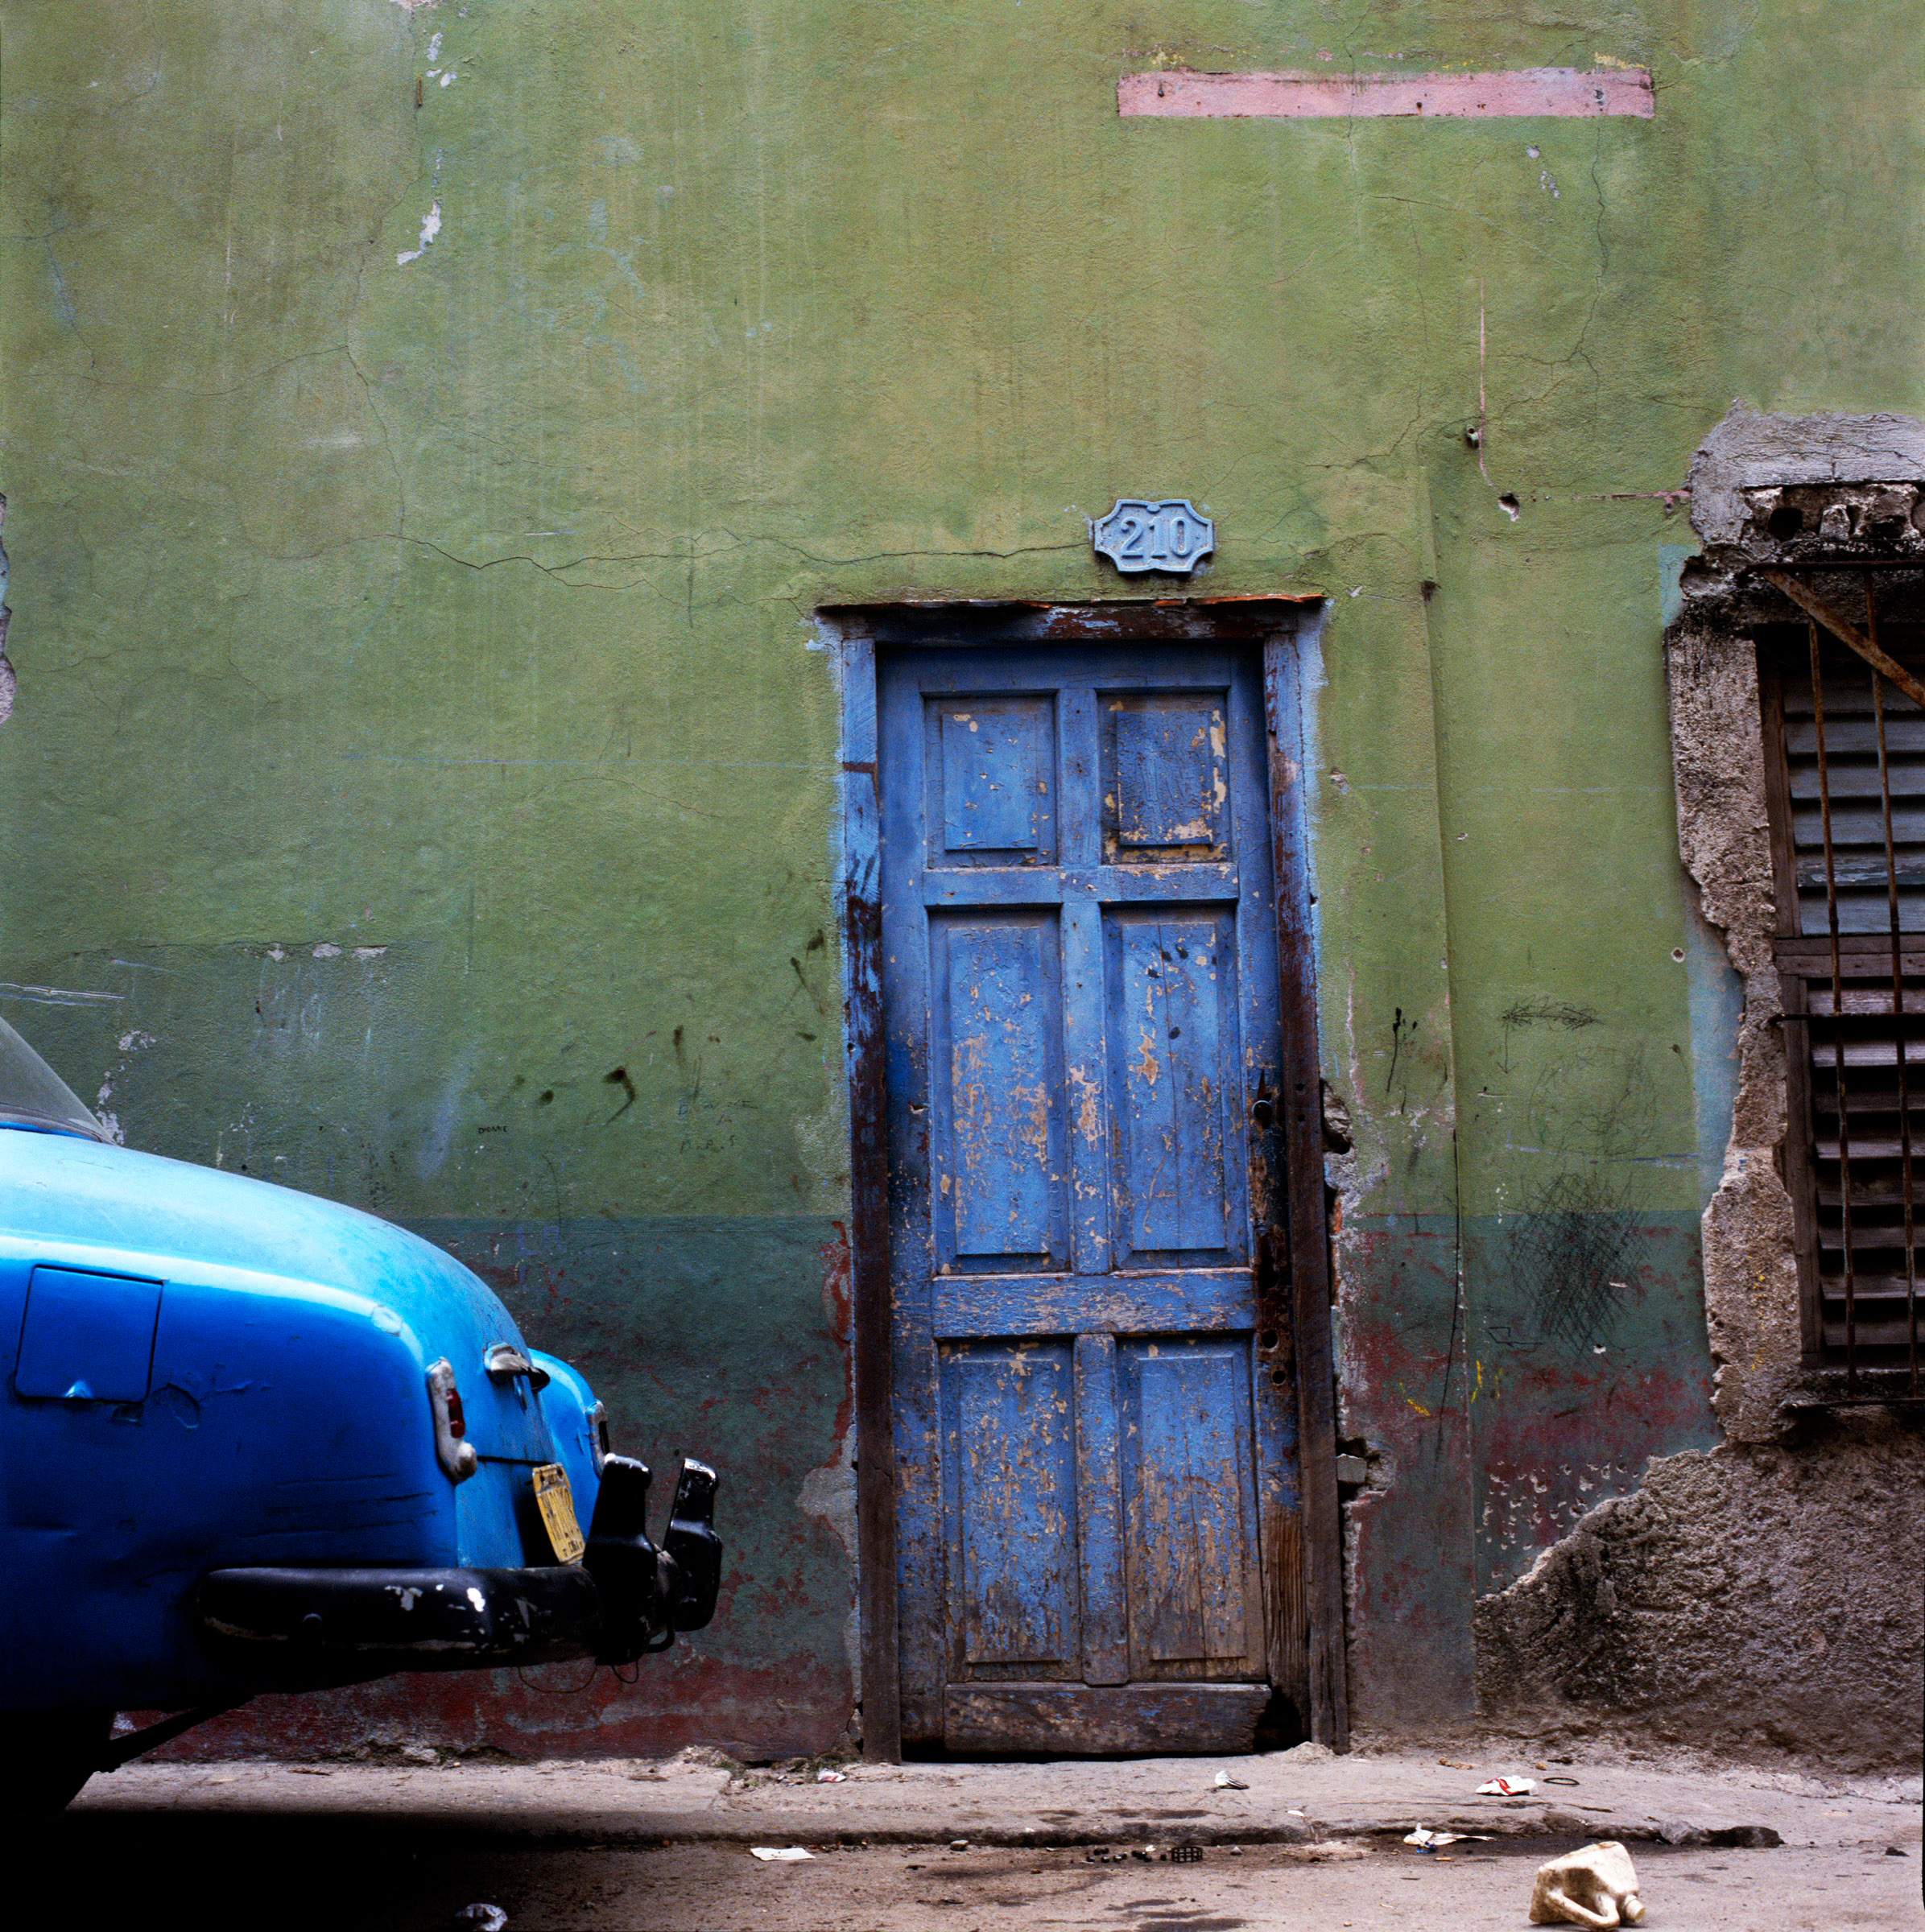 Blue Car and Wall, by Meghan Sisko